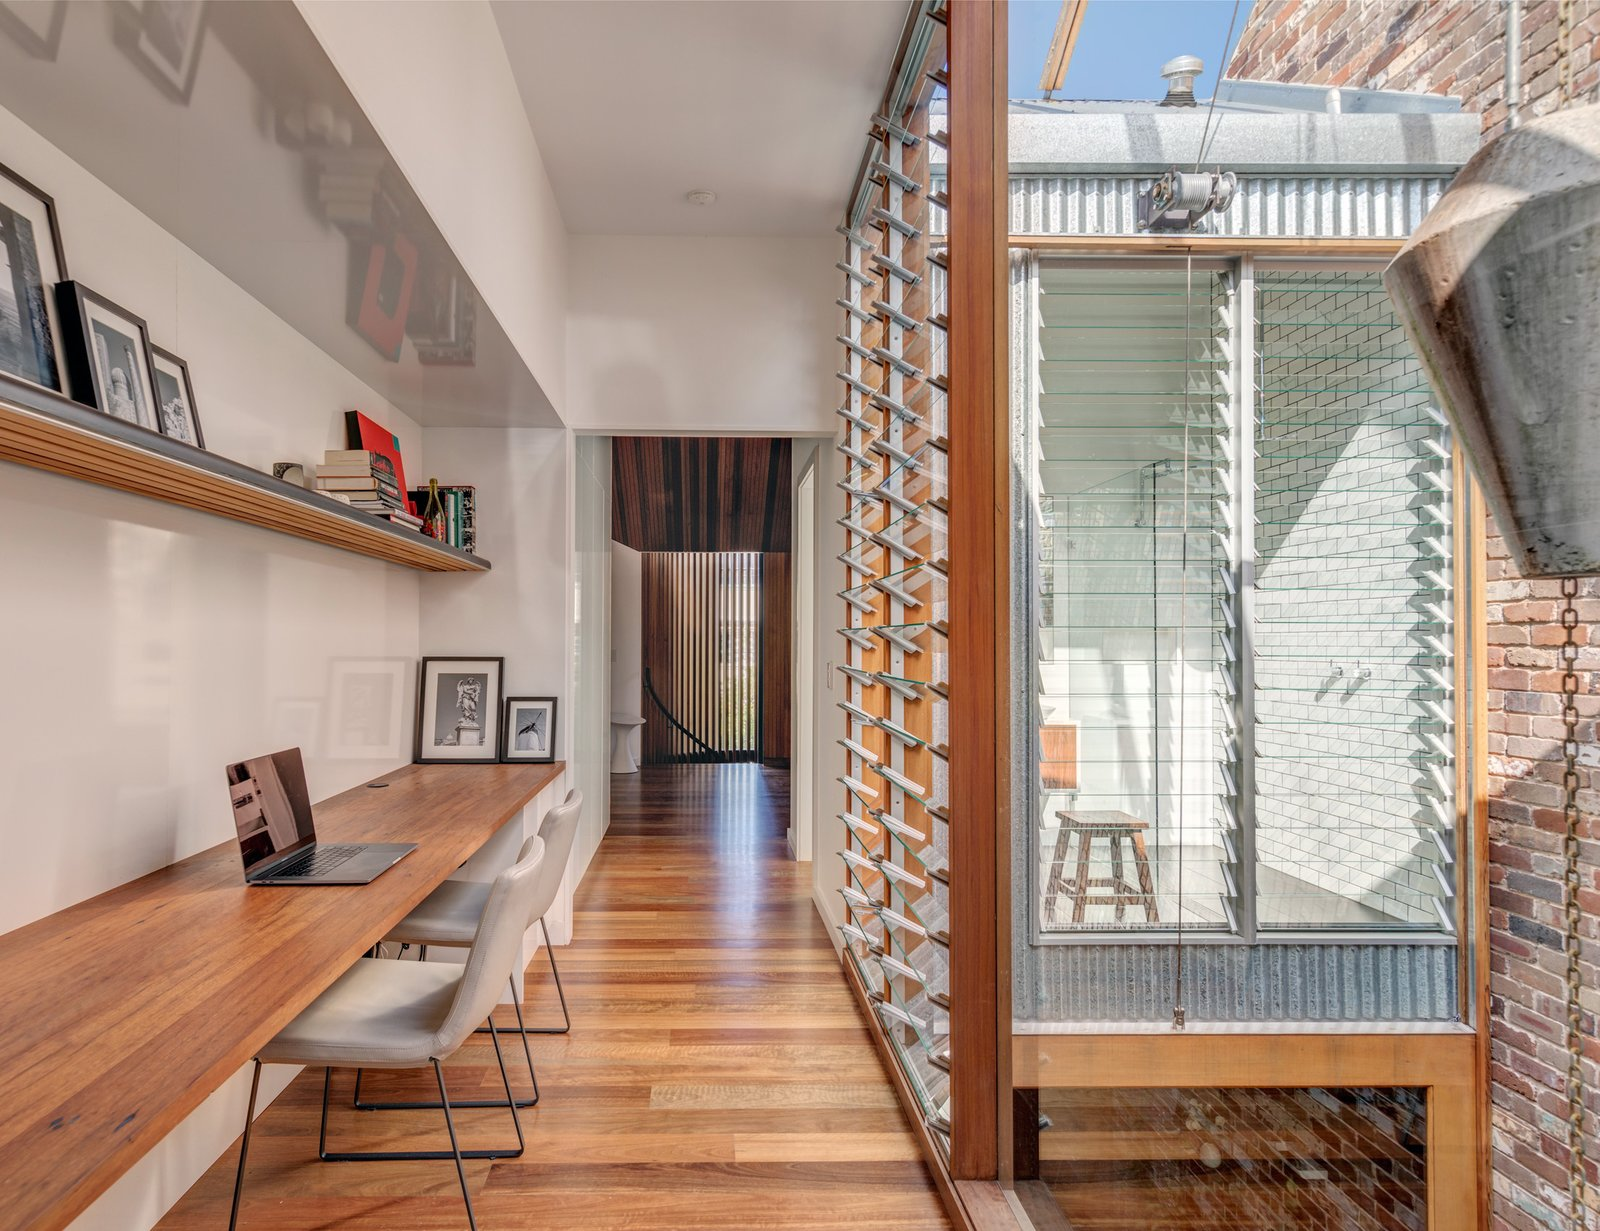 Photo 7 Of 9 In A Sustainable Home Near Sydney Boasts Chicken Coops,  Vertical Gardens, And More   Dwell